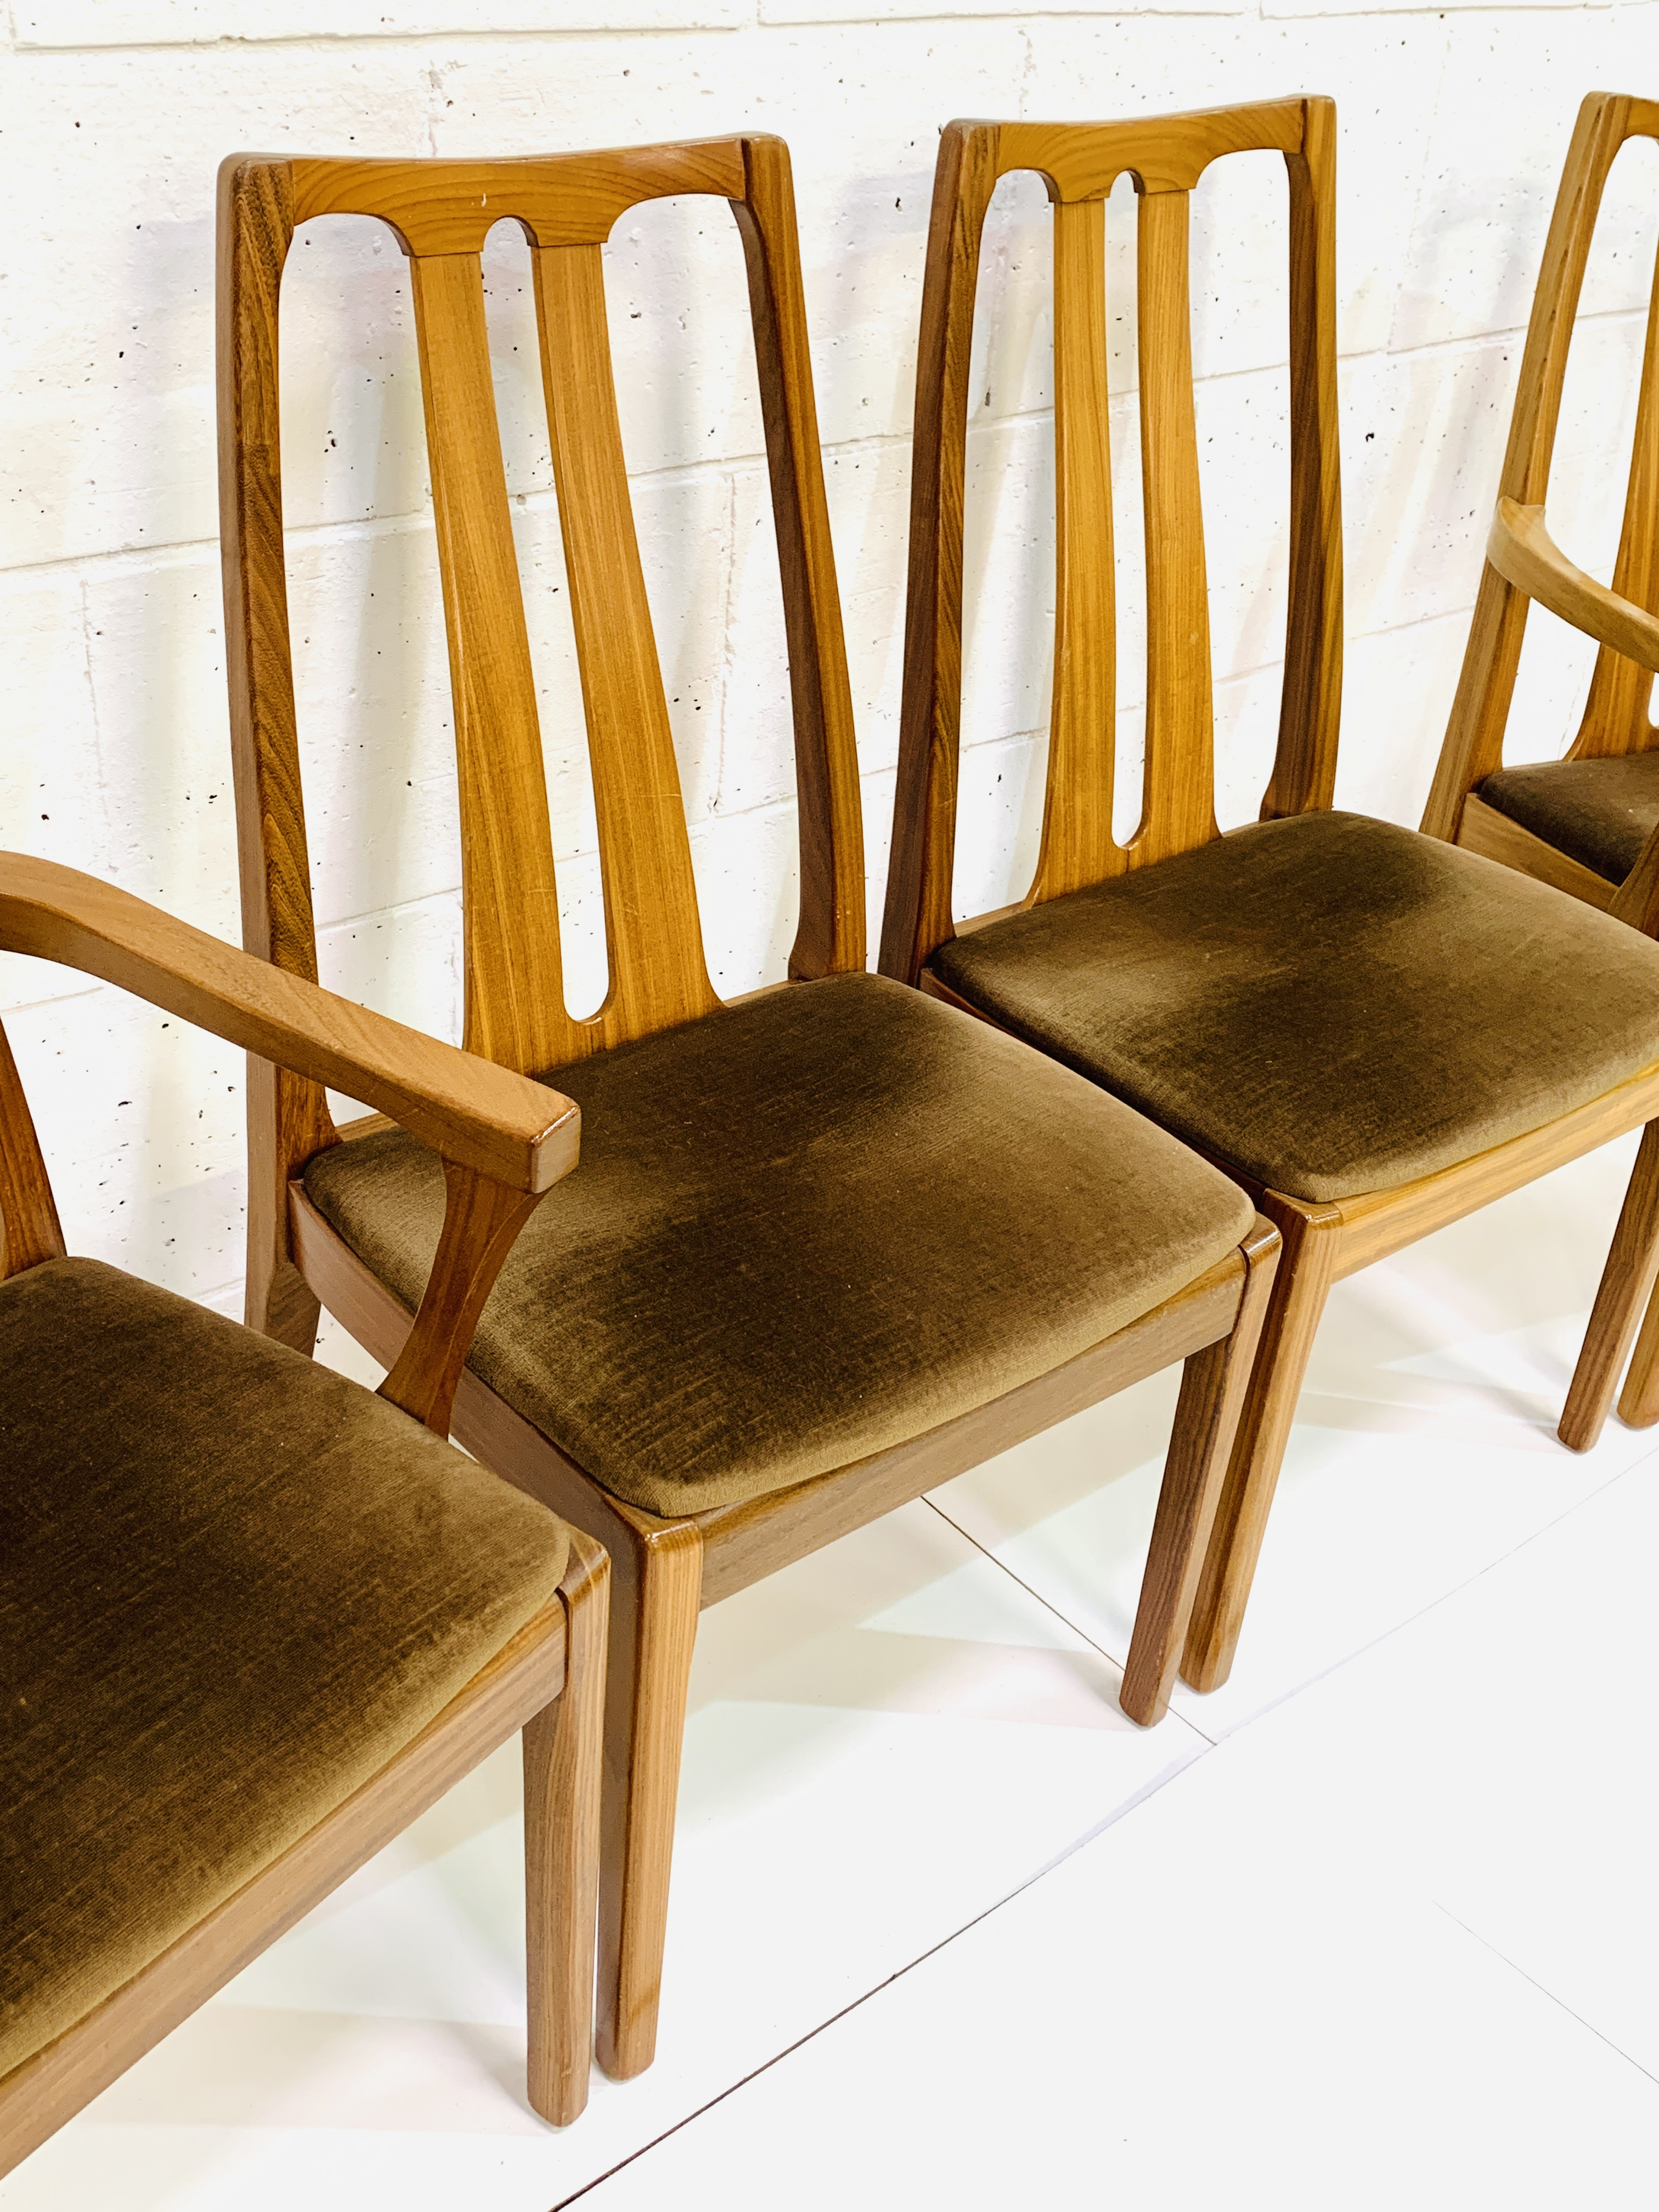 Group of four Nathan Furniture chairs - Image 4 of 6